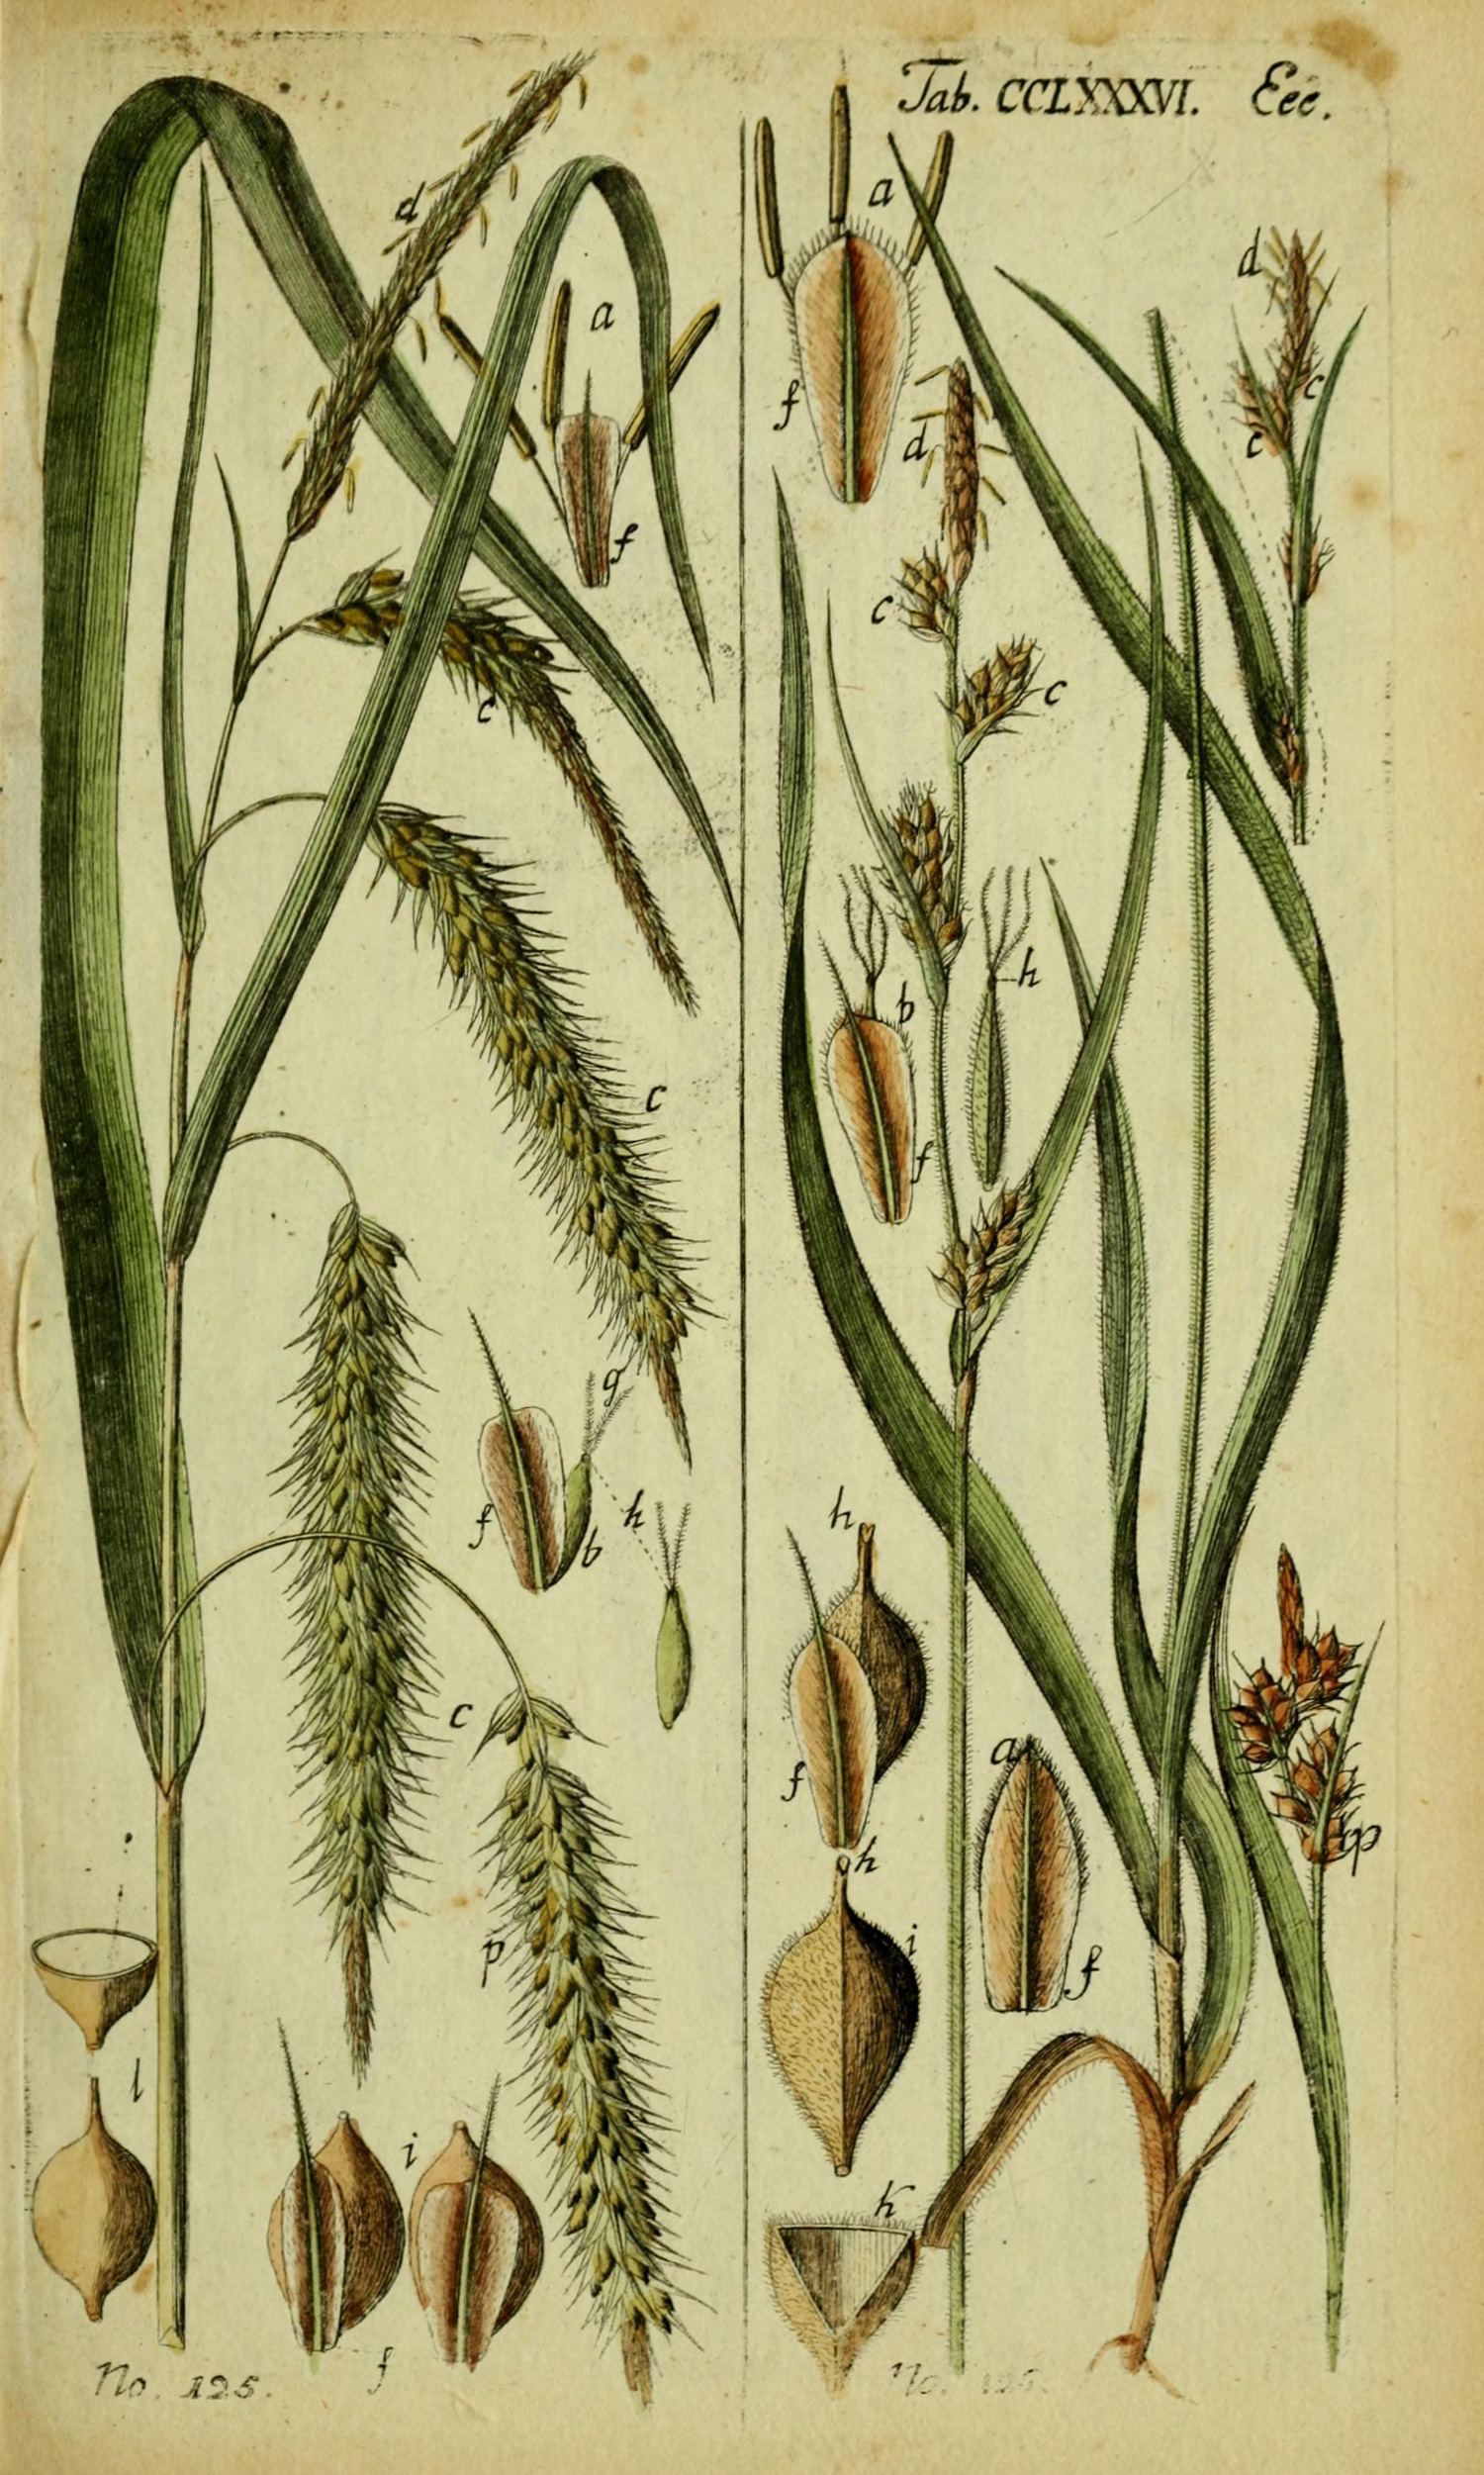 Illustration supplied by New York Botanical Garden via plantillustrations.org (Illustration ID#293669)